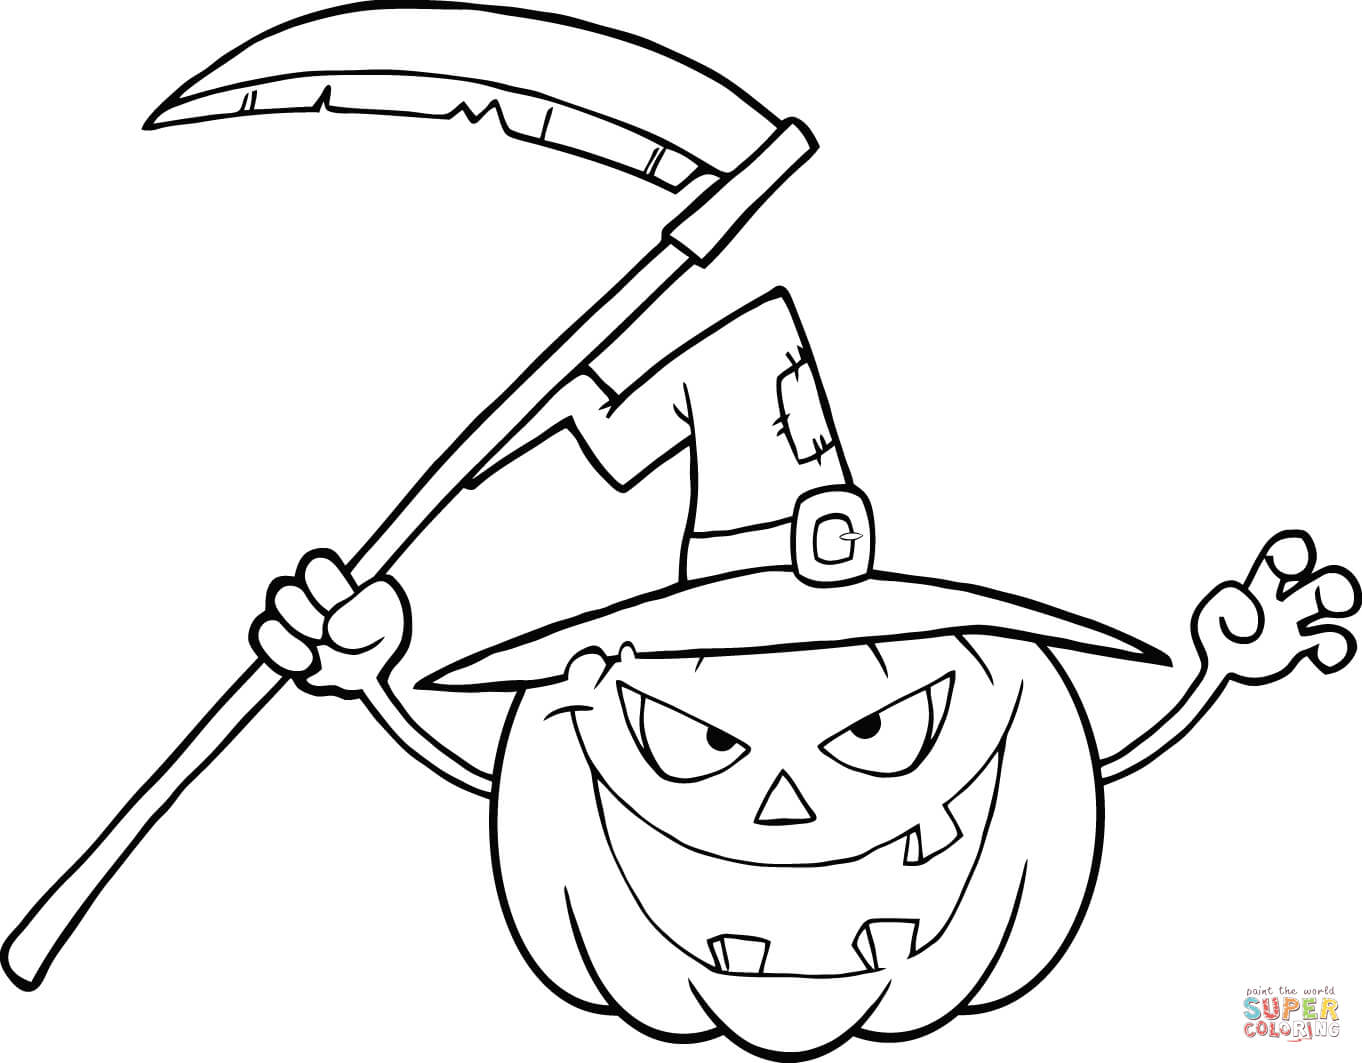 1362x1063 Scary Halloween Pumpkin With A Witch Hat And Scythe Coloring Page